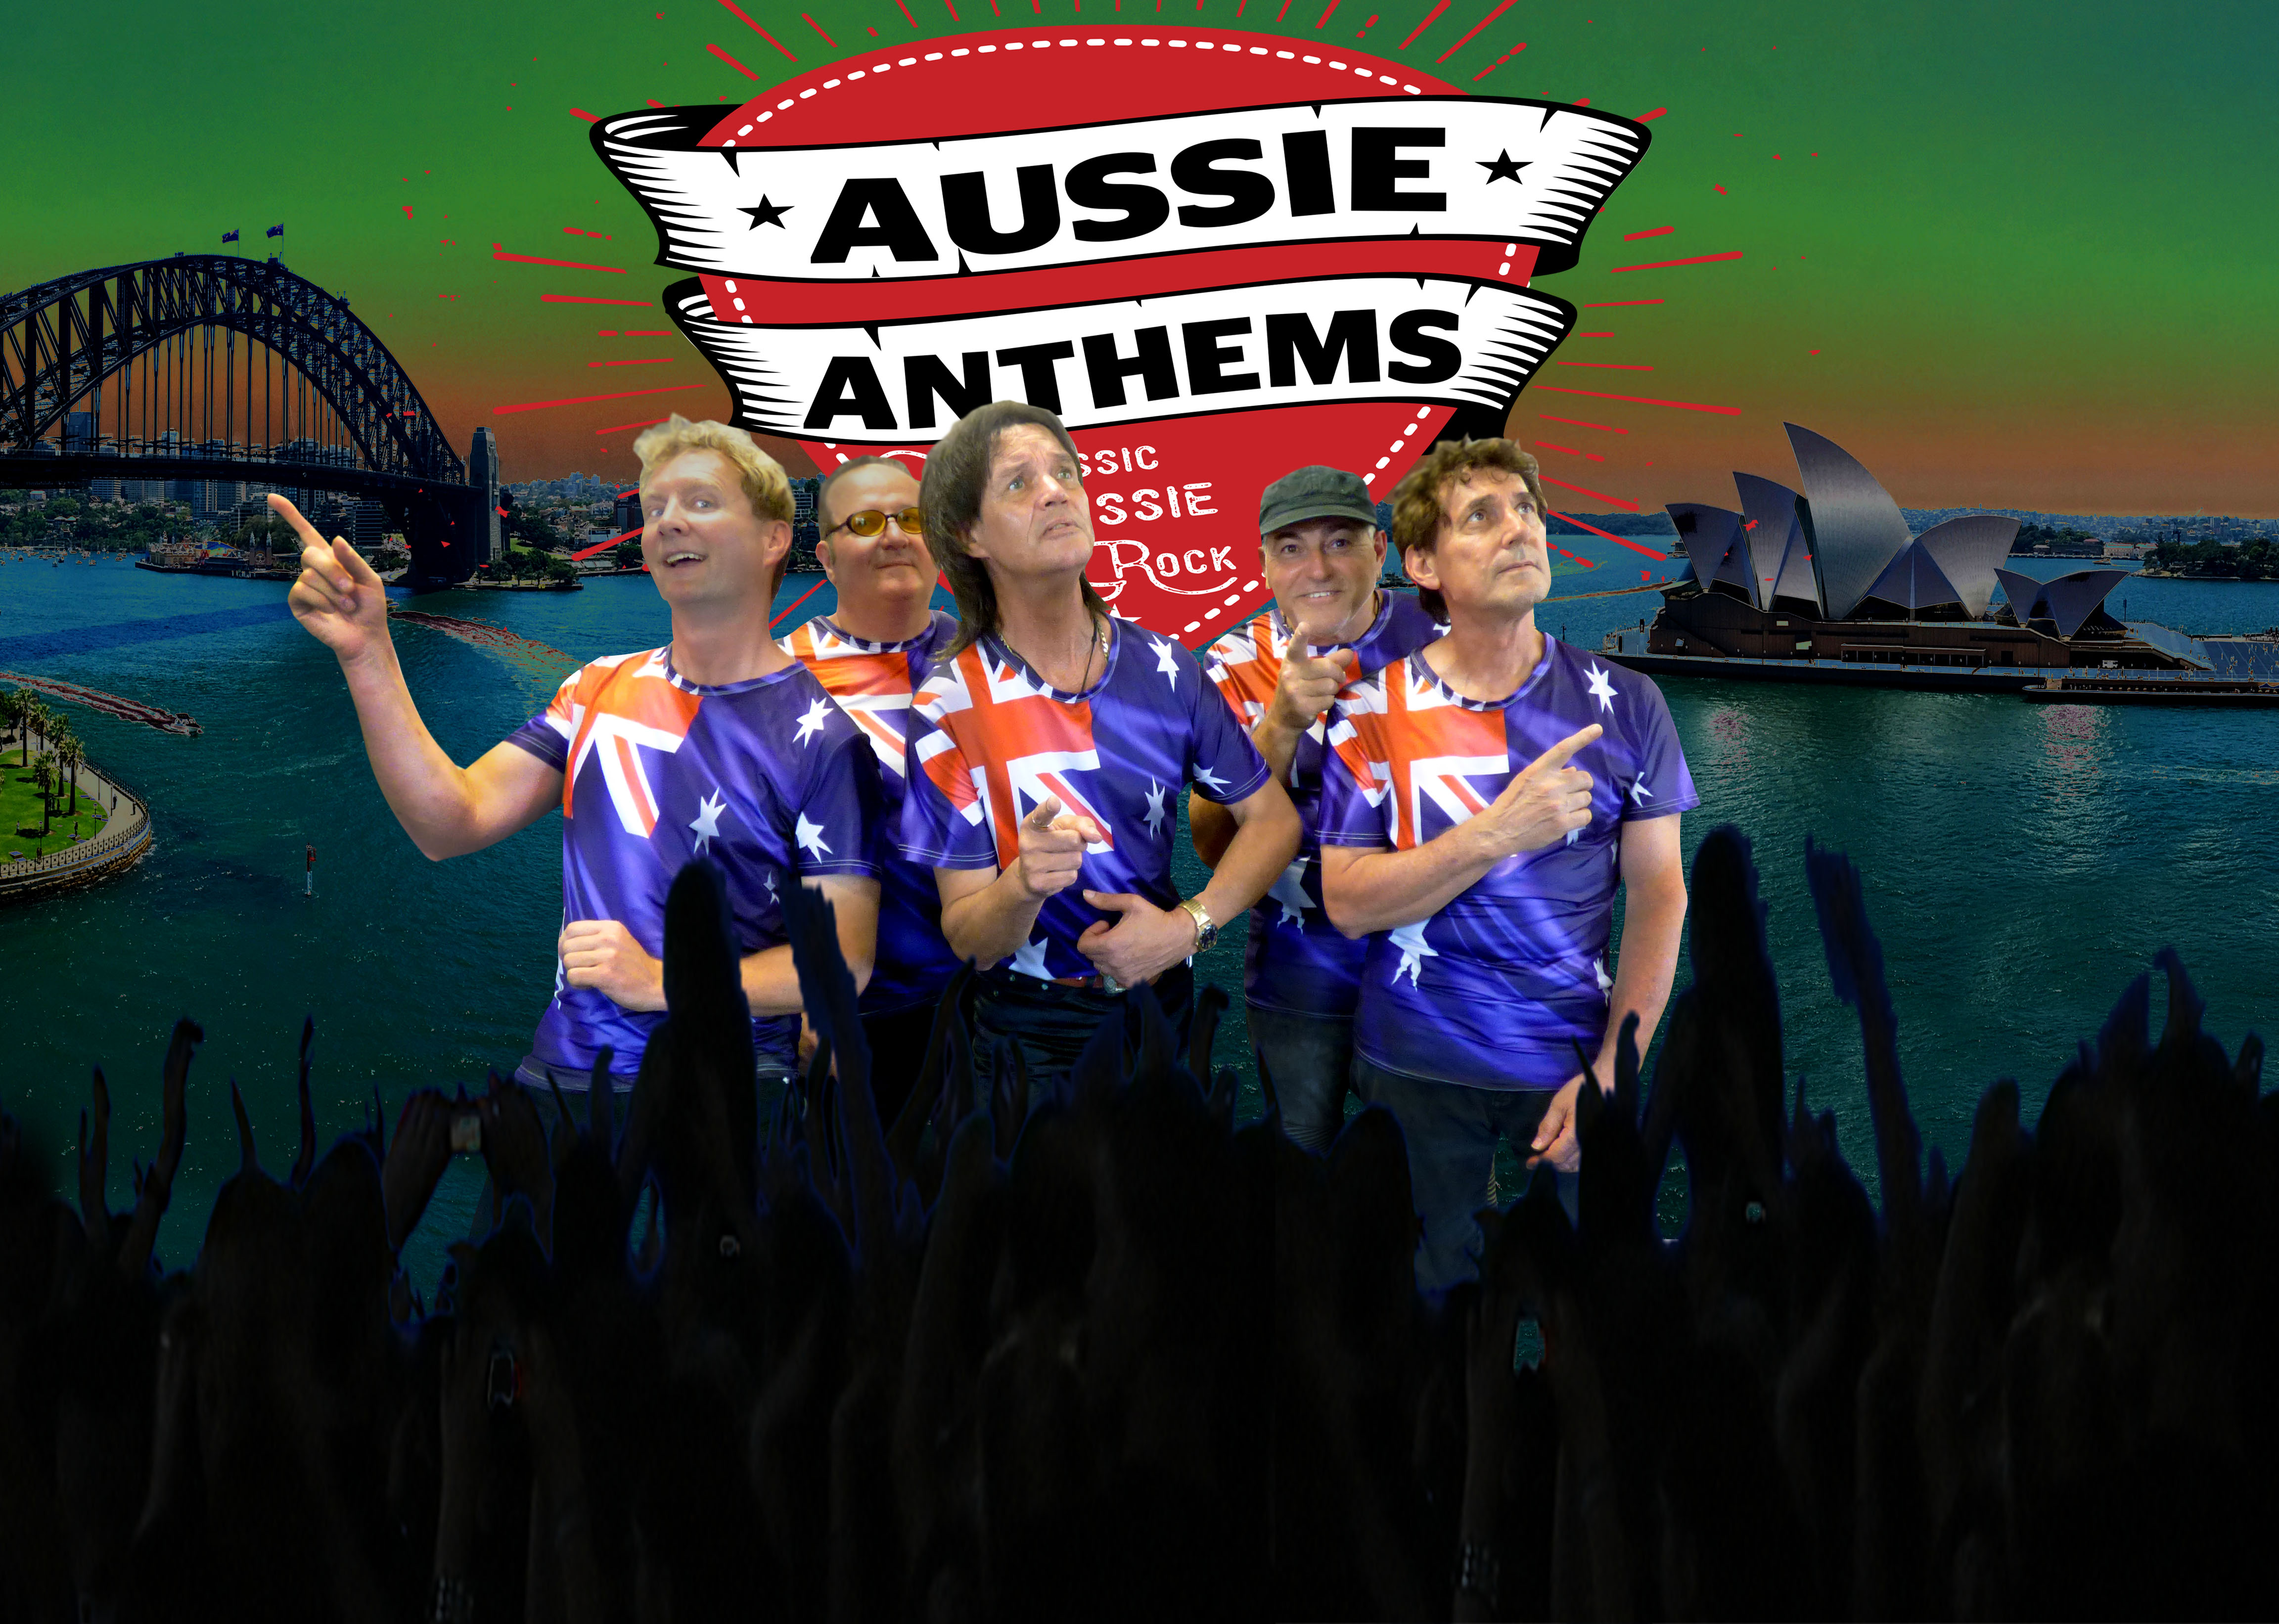 Classic Australian Rock Tribute Australia Day Entertainment